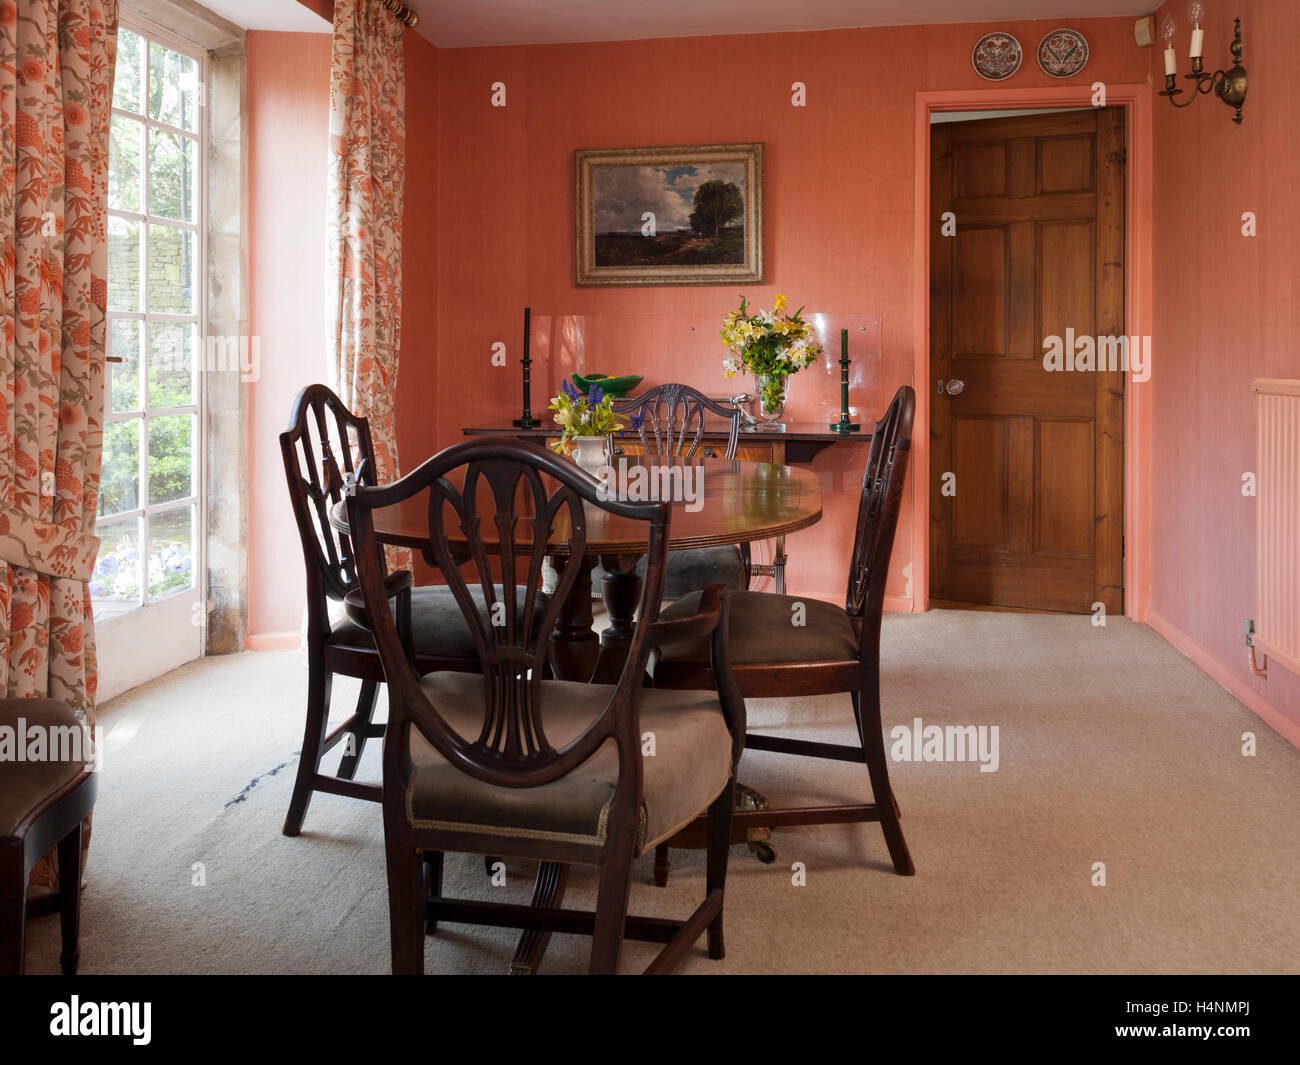 Traditionally furnished dining room with antique furniture and metal framed windows and french door - Stock Image